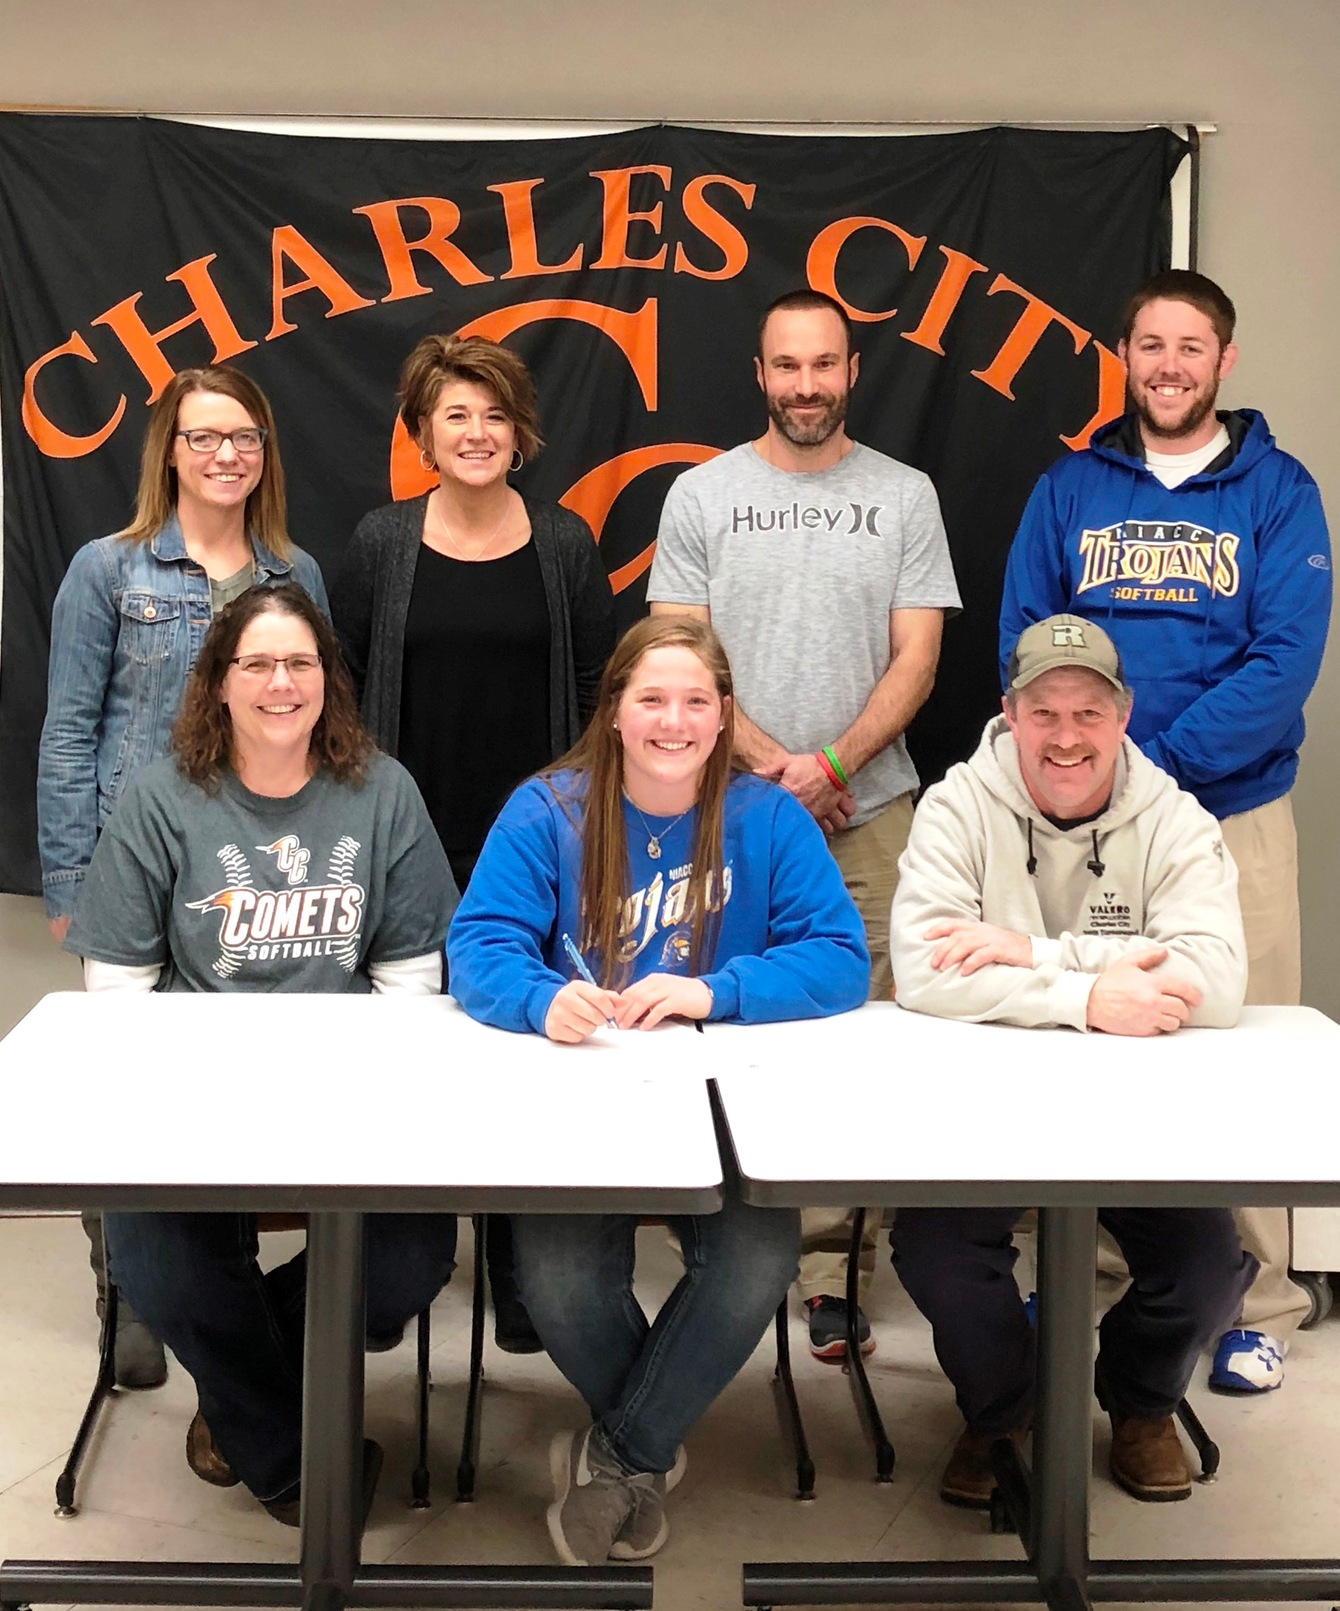 Charles City's Ciana Sonberg signed a national letter of intent Monday to play softball next season at NIACC.